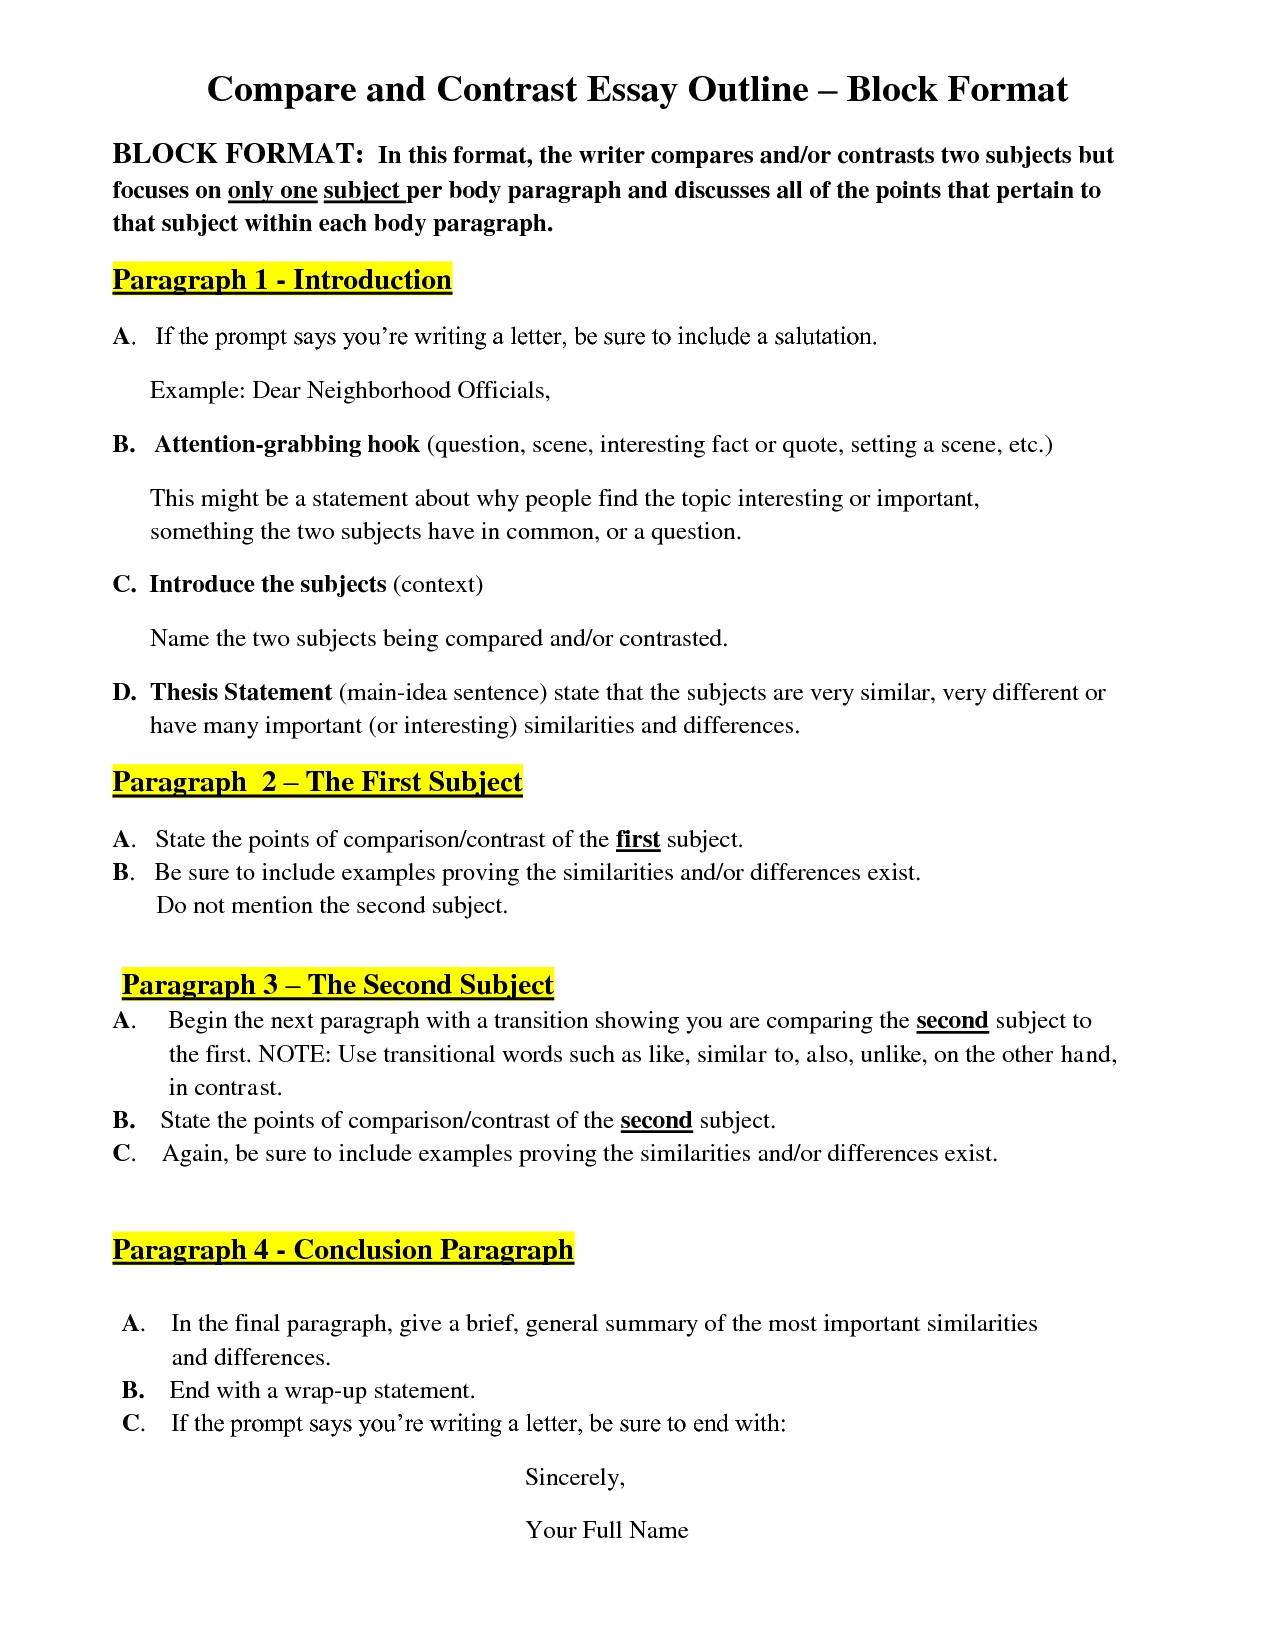 004 Essay Template Compare Contrast Outline Example Maxresdefault Creating Project Plan For Your Youtube How To An With Good Cover Letter Samples Point Wonderful By Structure Introduction Full